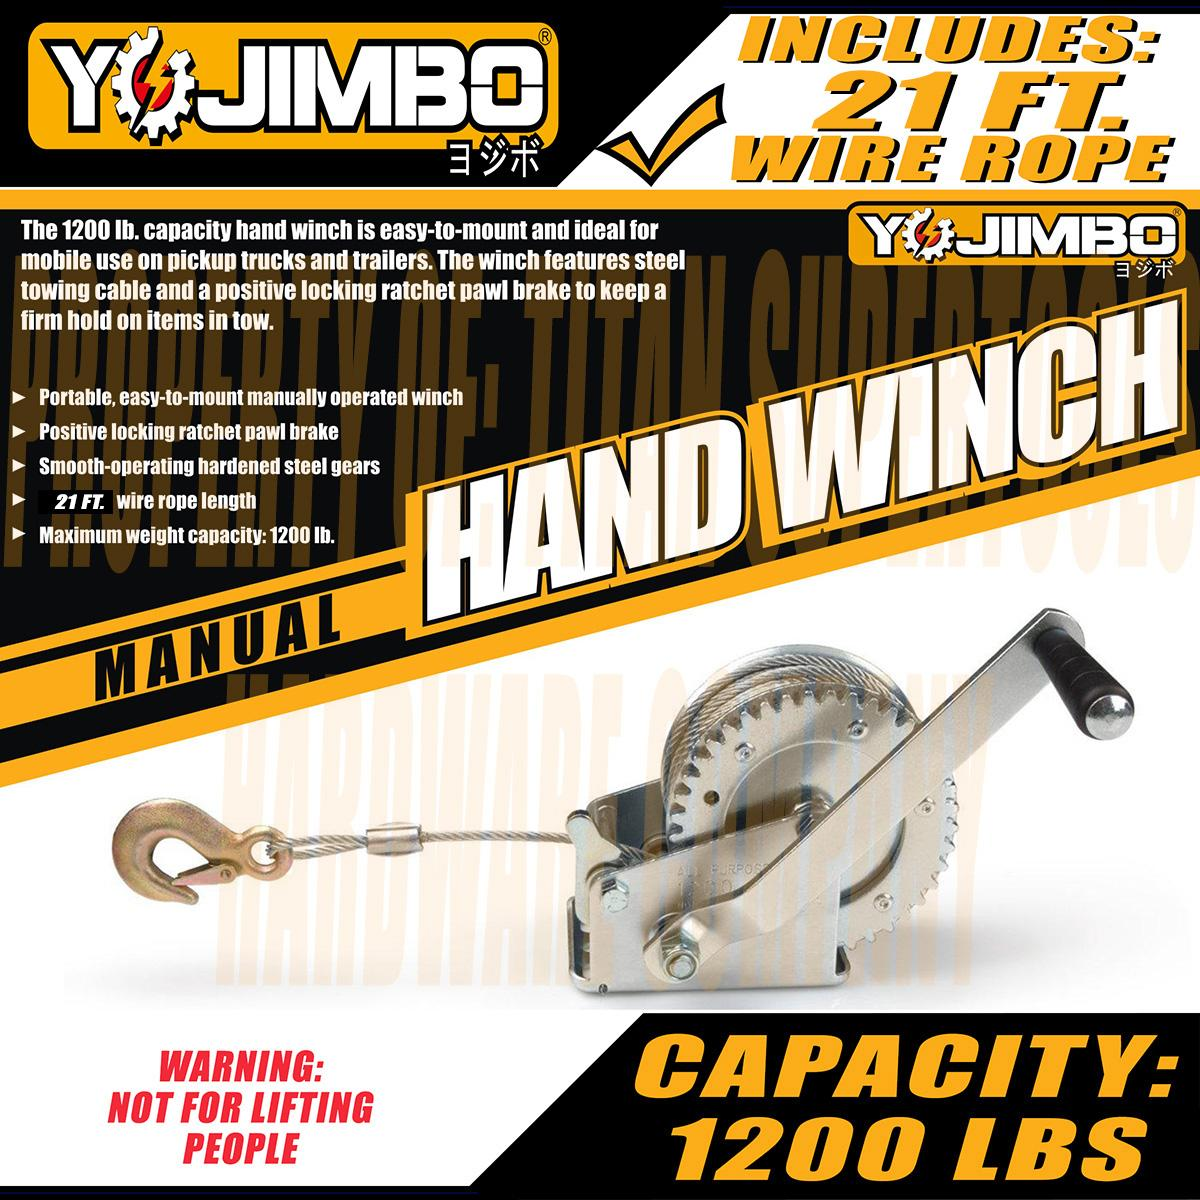 Yojimbo YJ-HW10M 1200 Lb. Manual Hand Winch